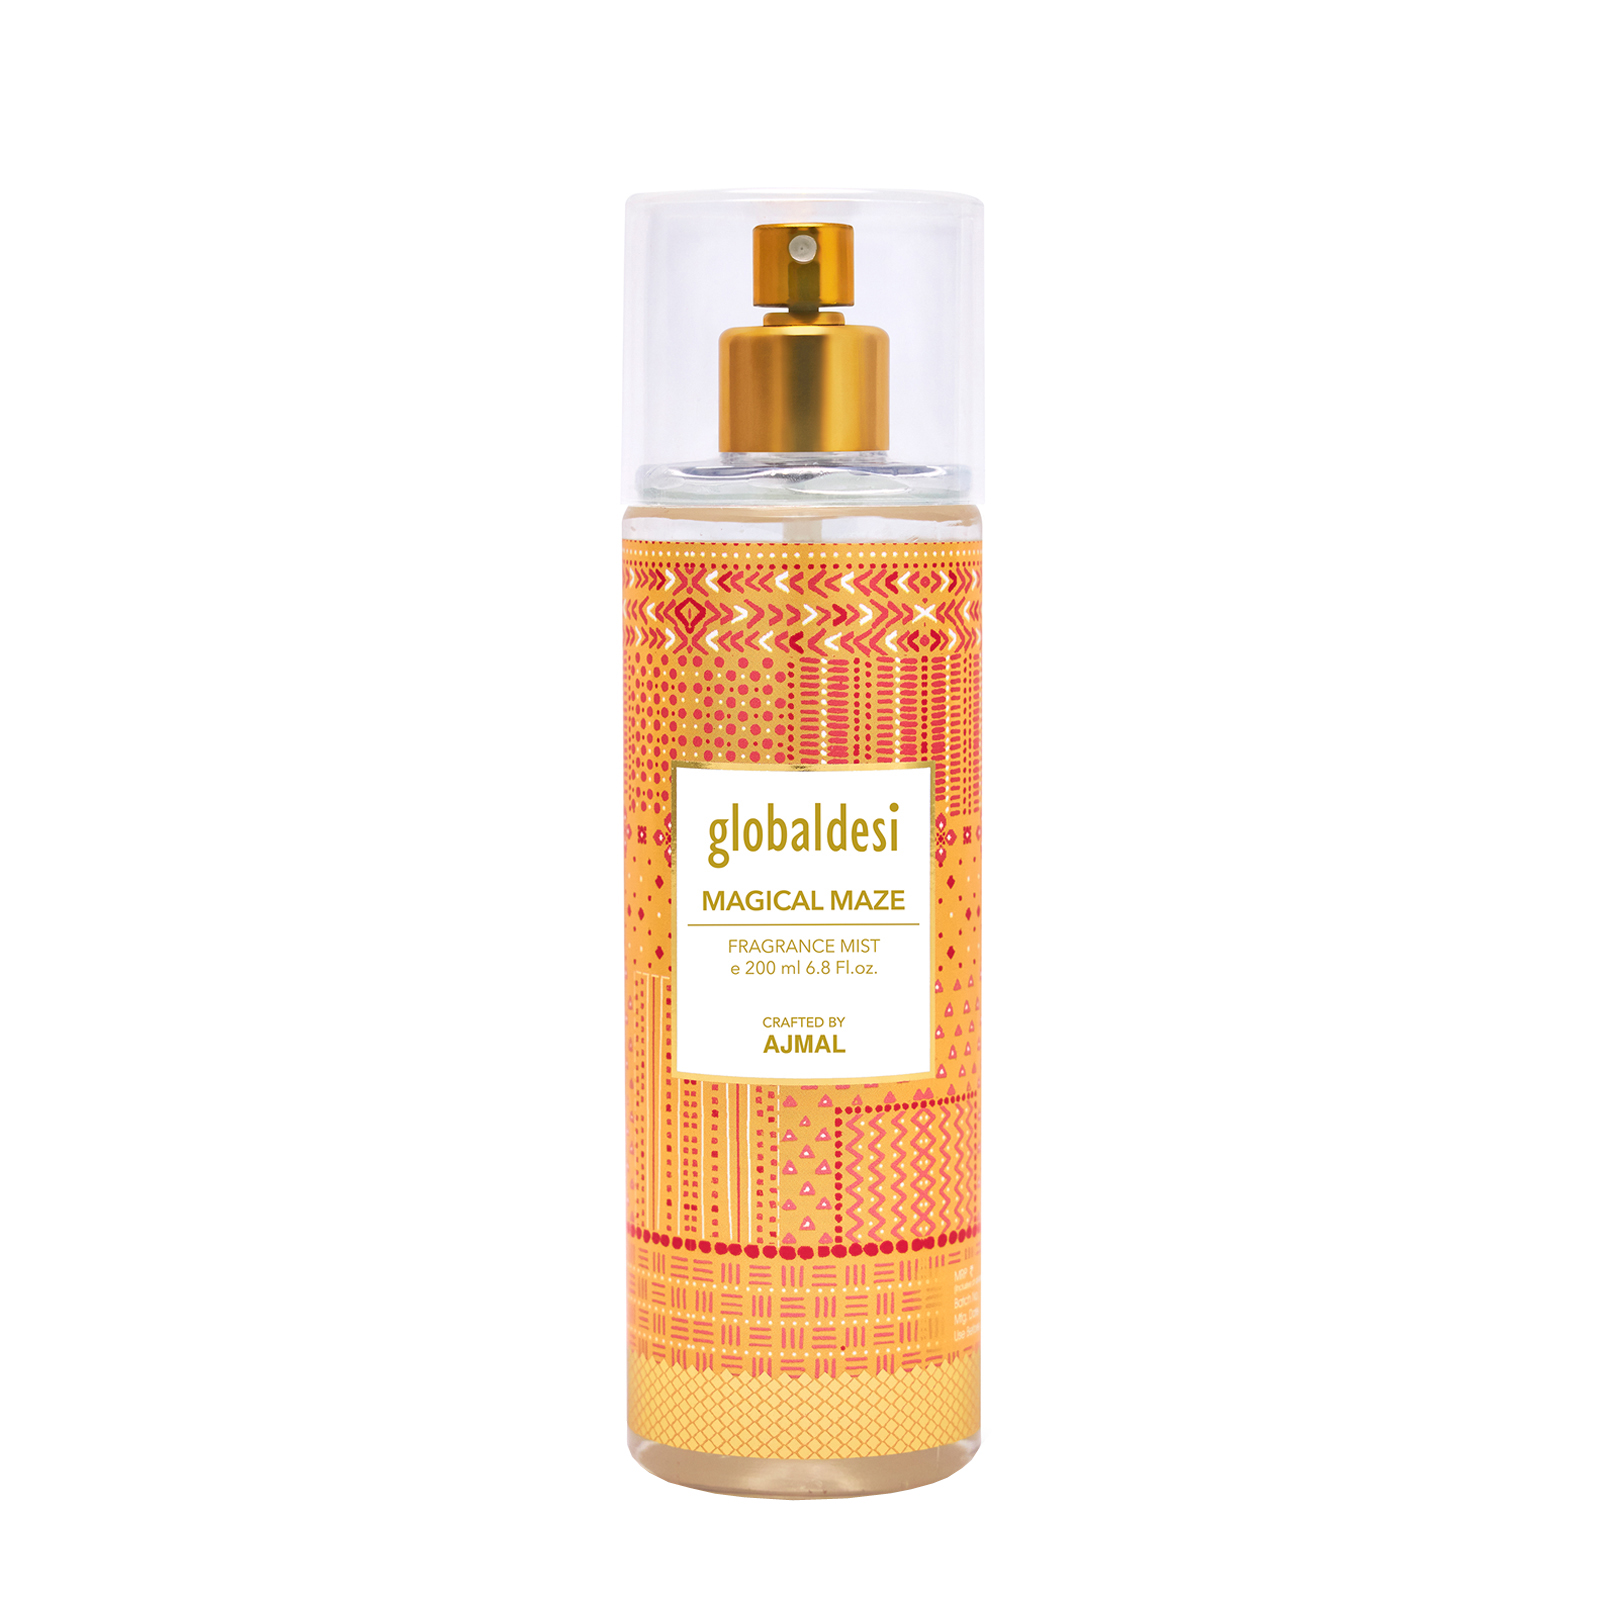 Global Desi Crafted By Ajmal | Global Desi Magical Maze Body Mist 200ML for Women Crafted by Ajmal